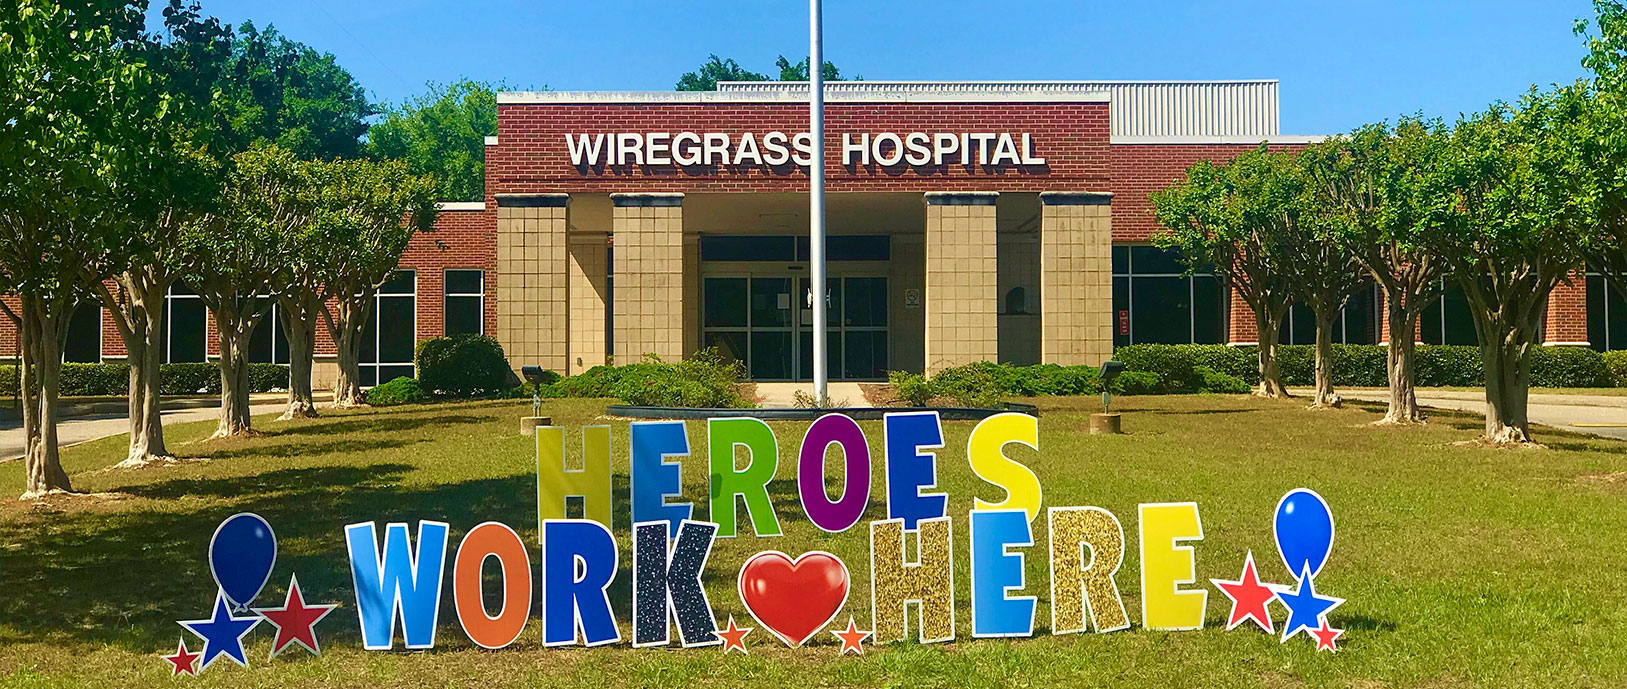 Pictured is a photograph of our hospital with a sign in from saying Heroes Work Here.